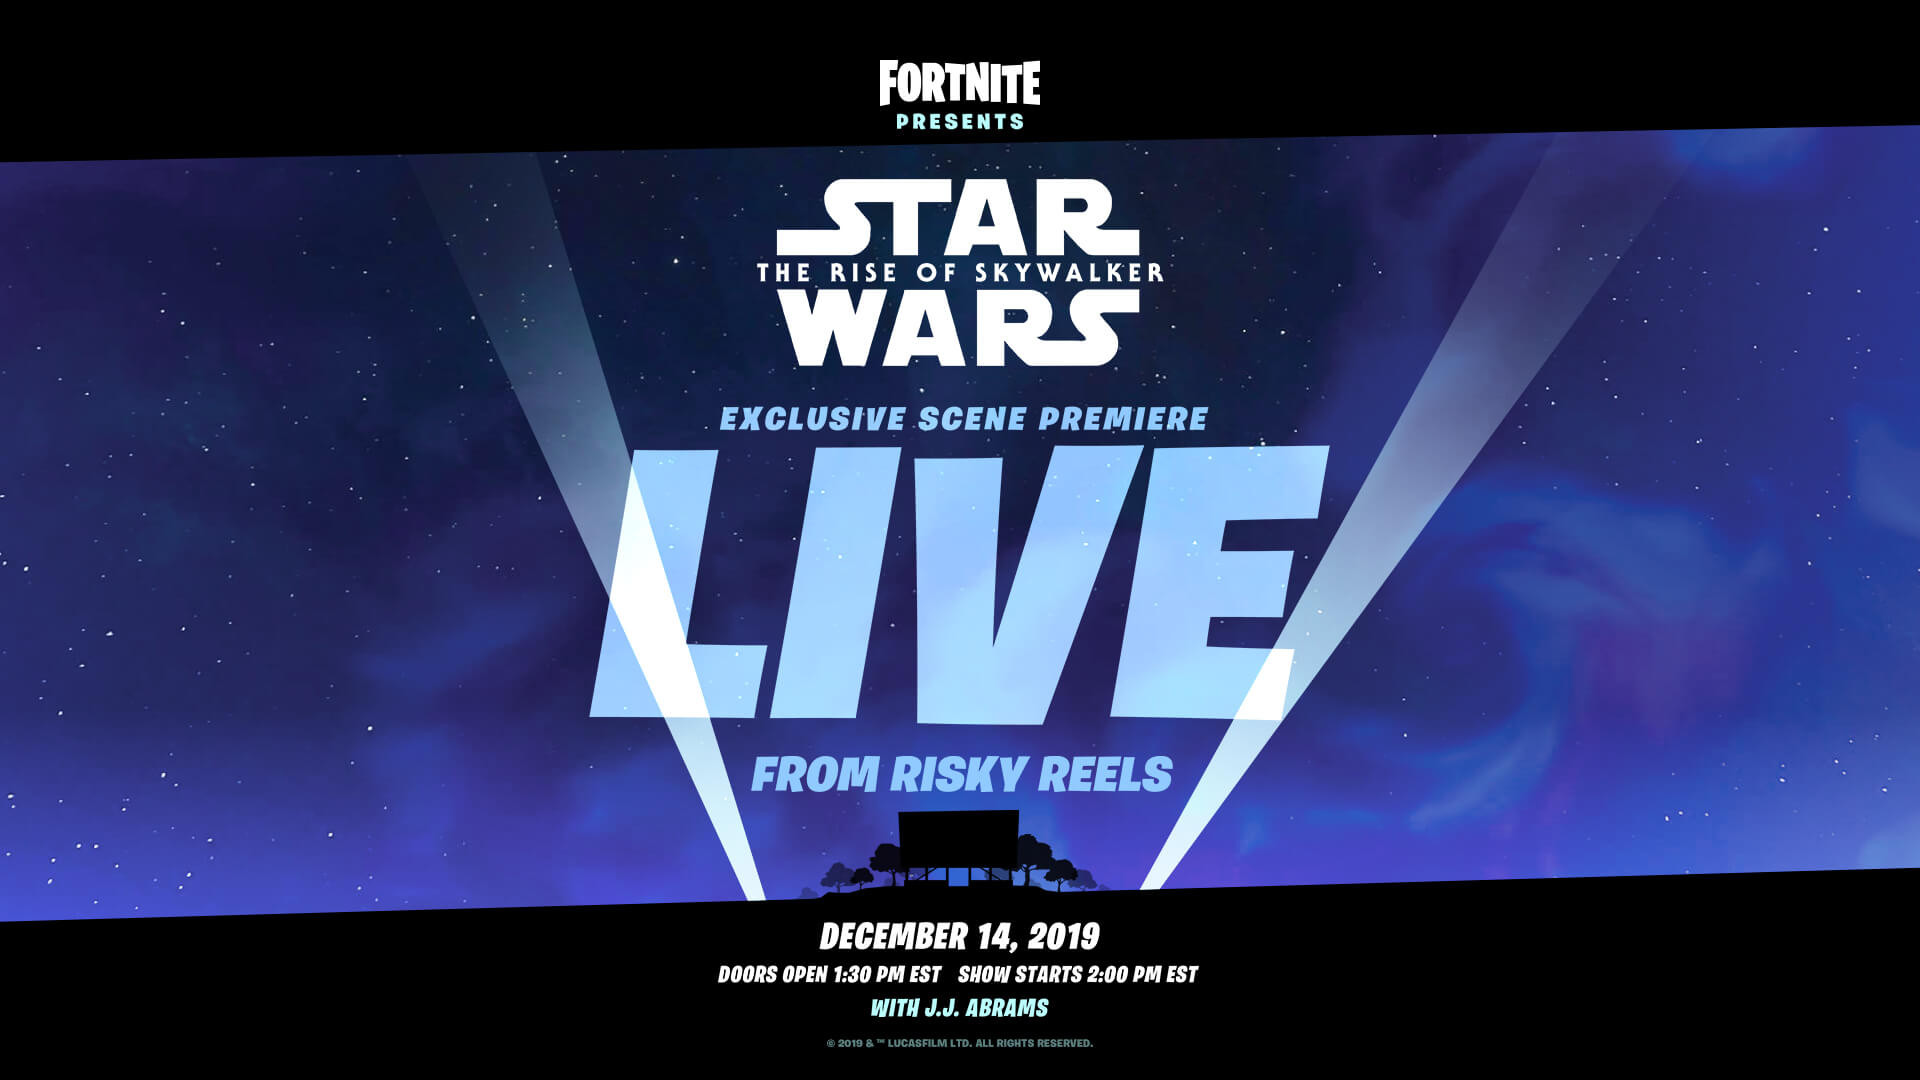 Fortnite_blog_the-force-is-strong-with-fortnite_EN_11BR_Galileo_Poster_HYPE_UA_Social-1920x1080-6f188ec773ae85f1486a2727cbf33b4096737048.jpg